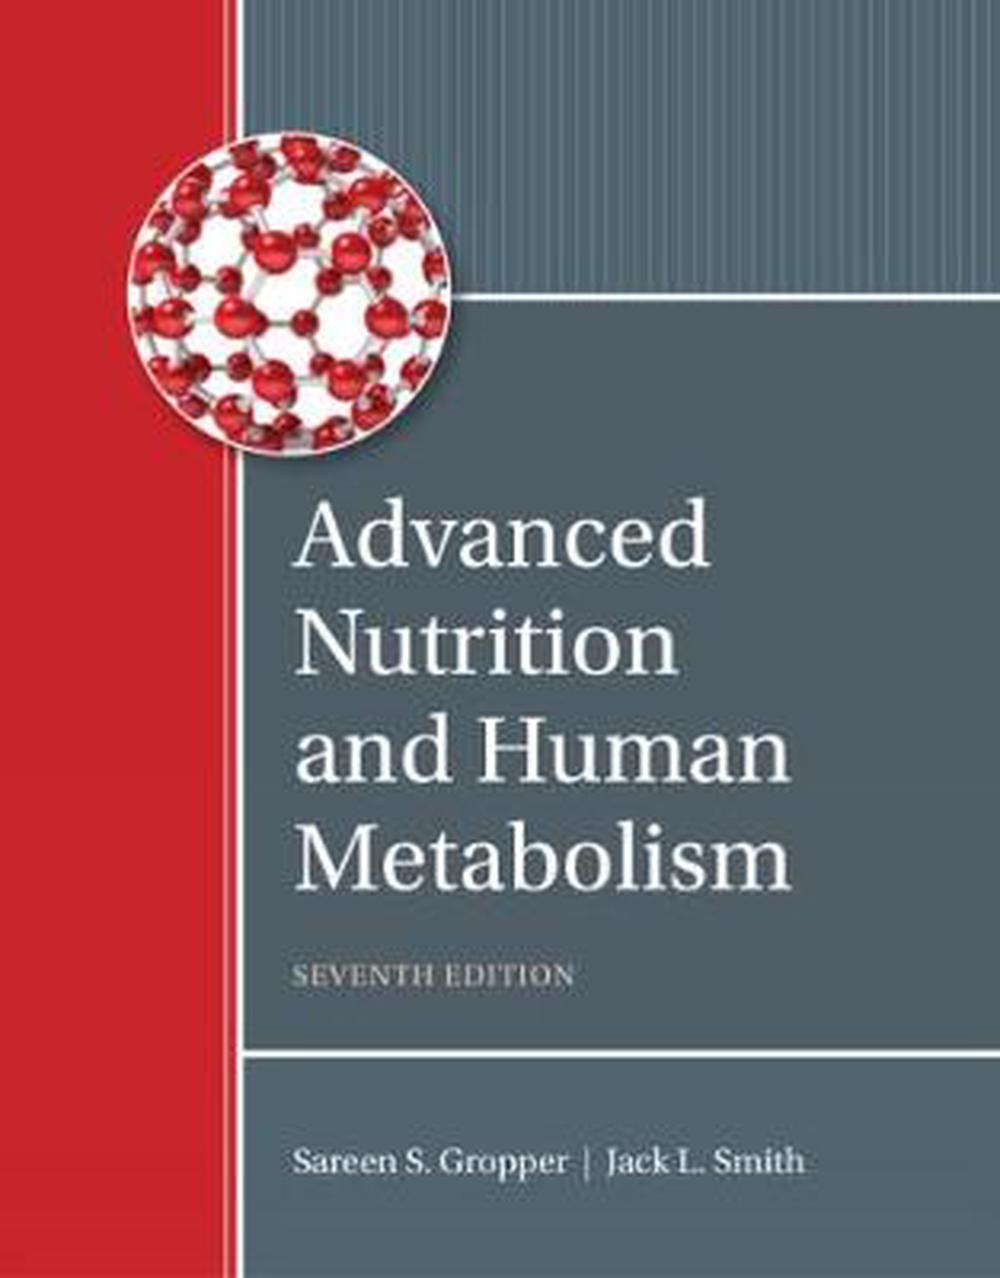 Advanced Nutrition and Human Metabolism, 7th Edition